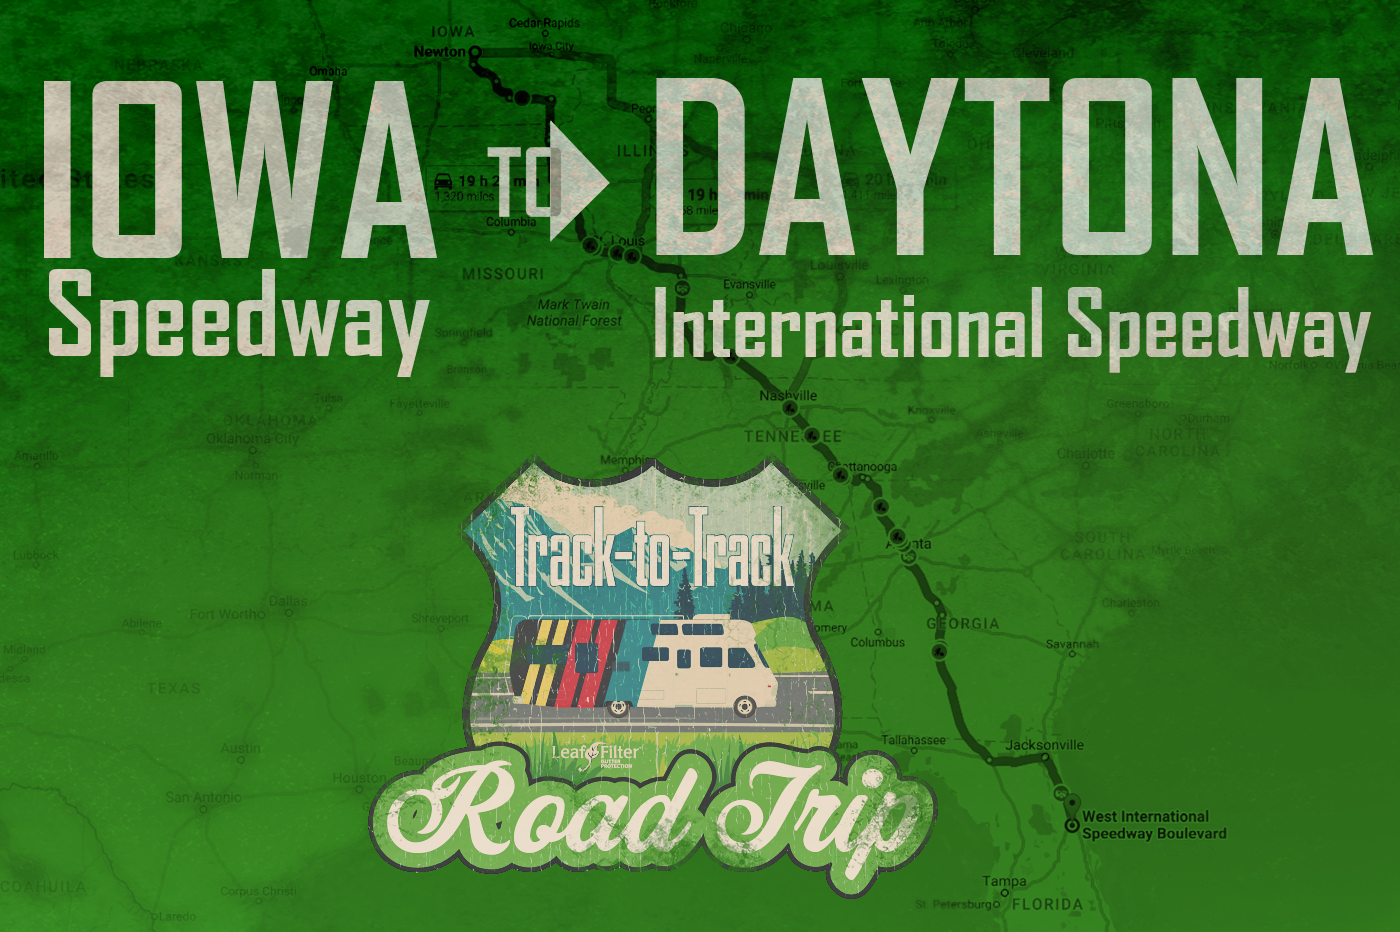 Track-to-Track Road Trip : Iowa Speedway to Daytona International Speedway